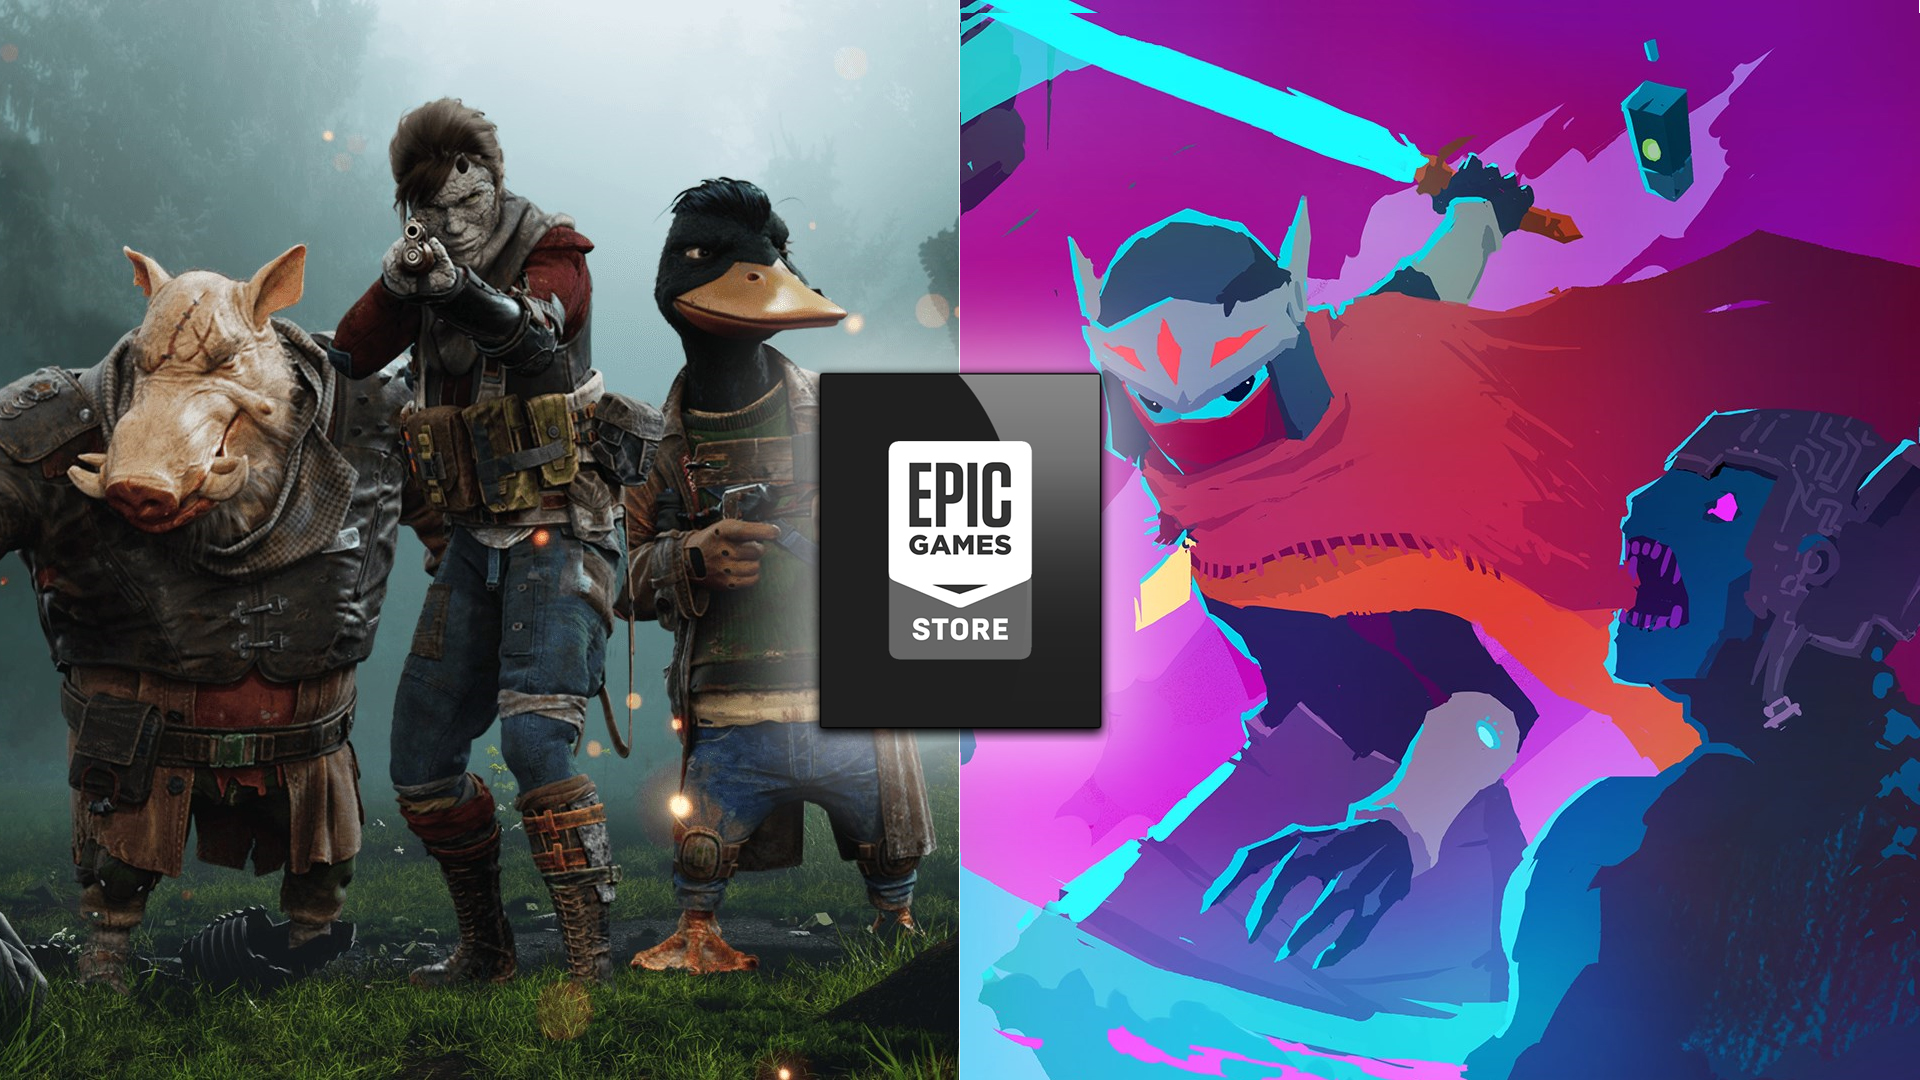 Hyper Lighter Drifter & Mutant Year Zero are redeemable for free at Epic Games ... 1